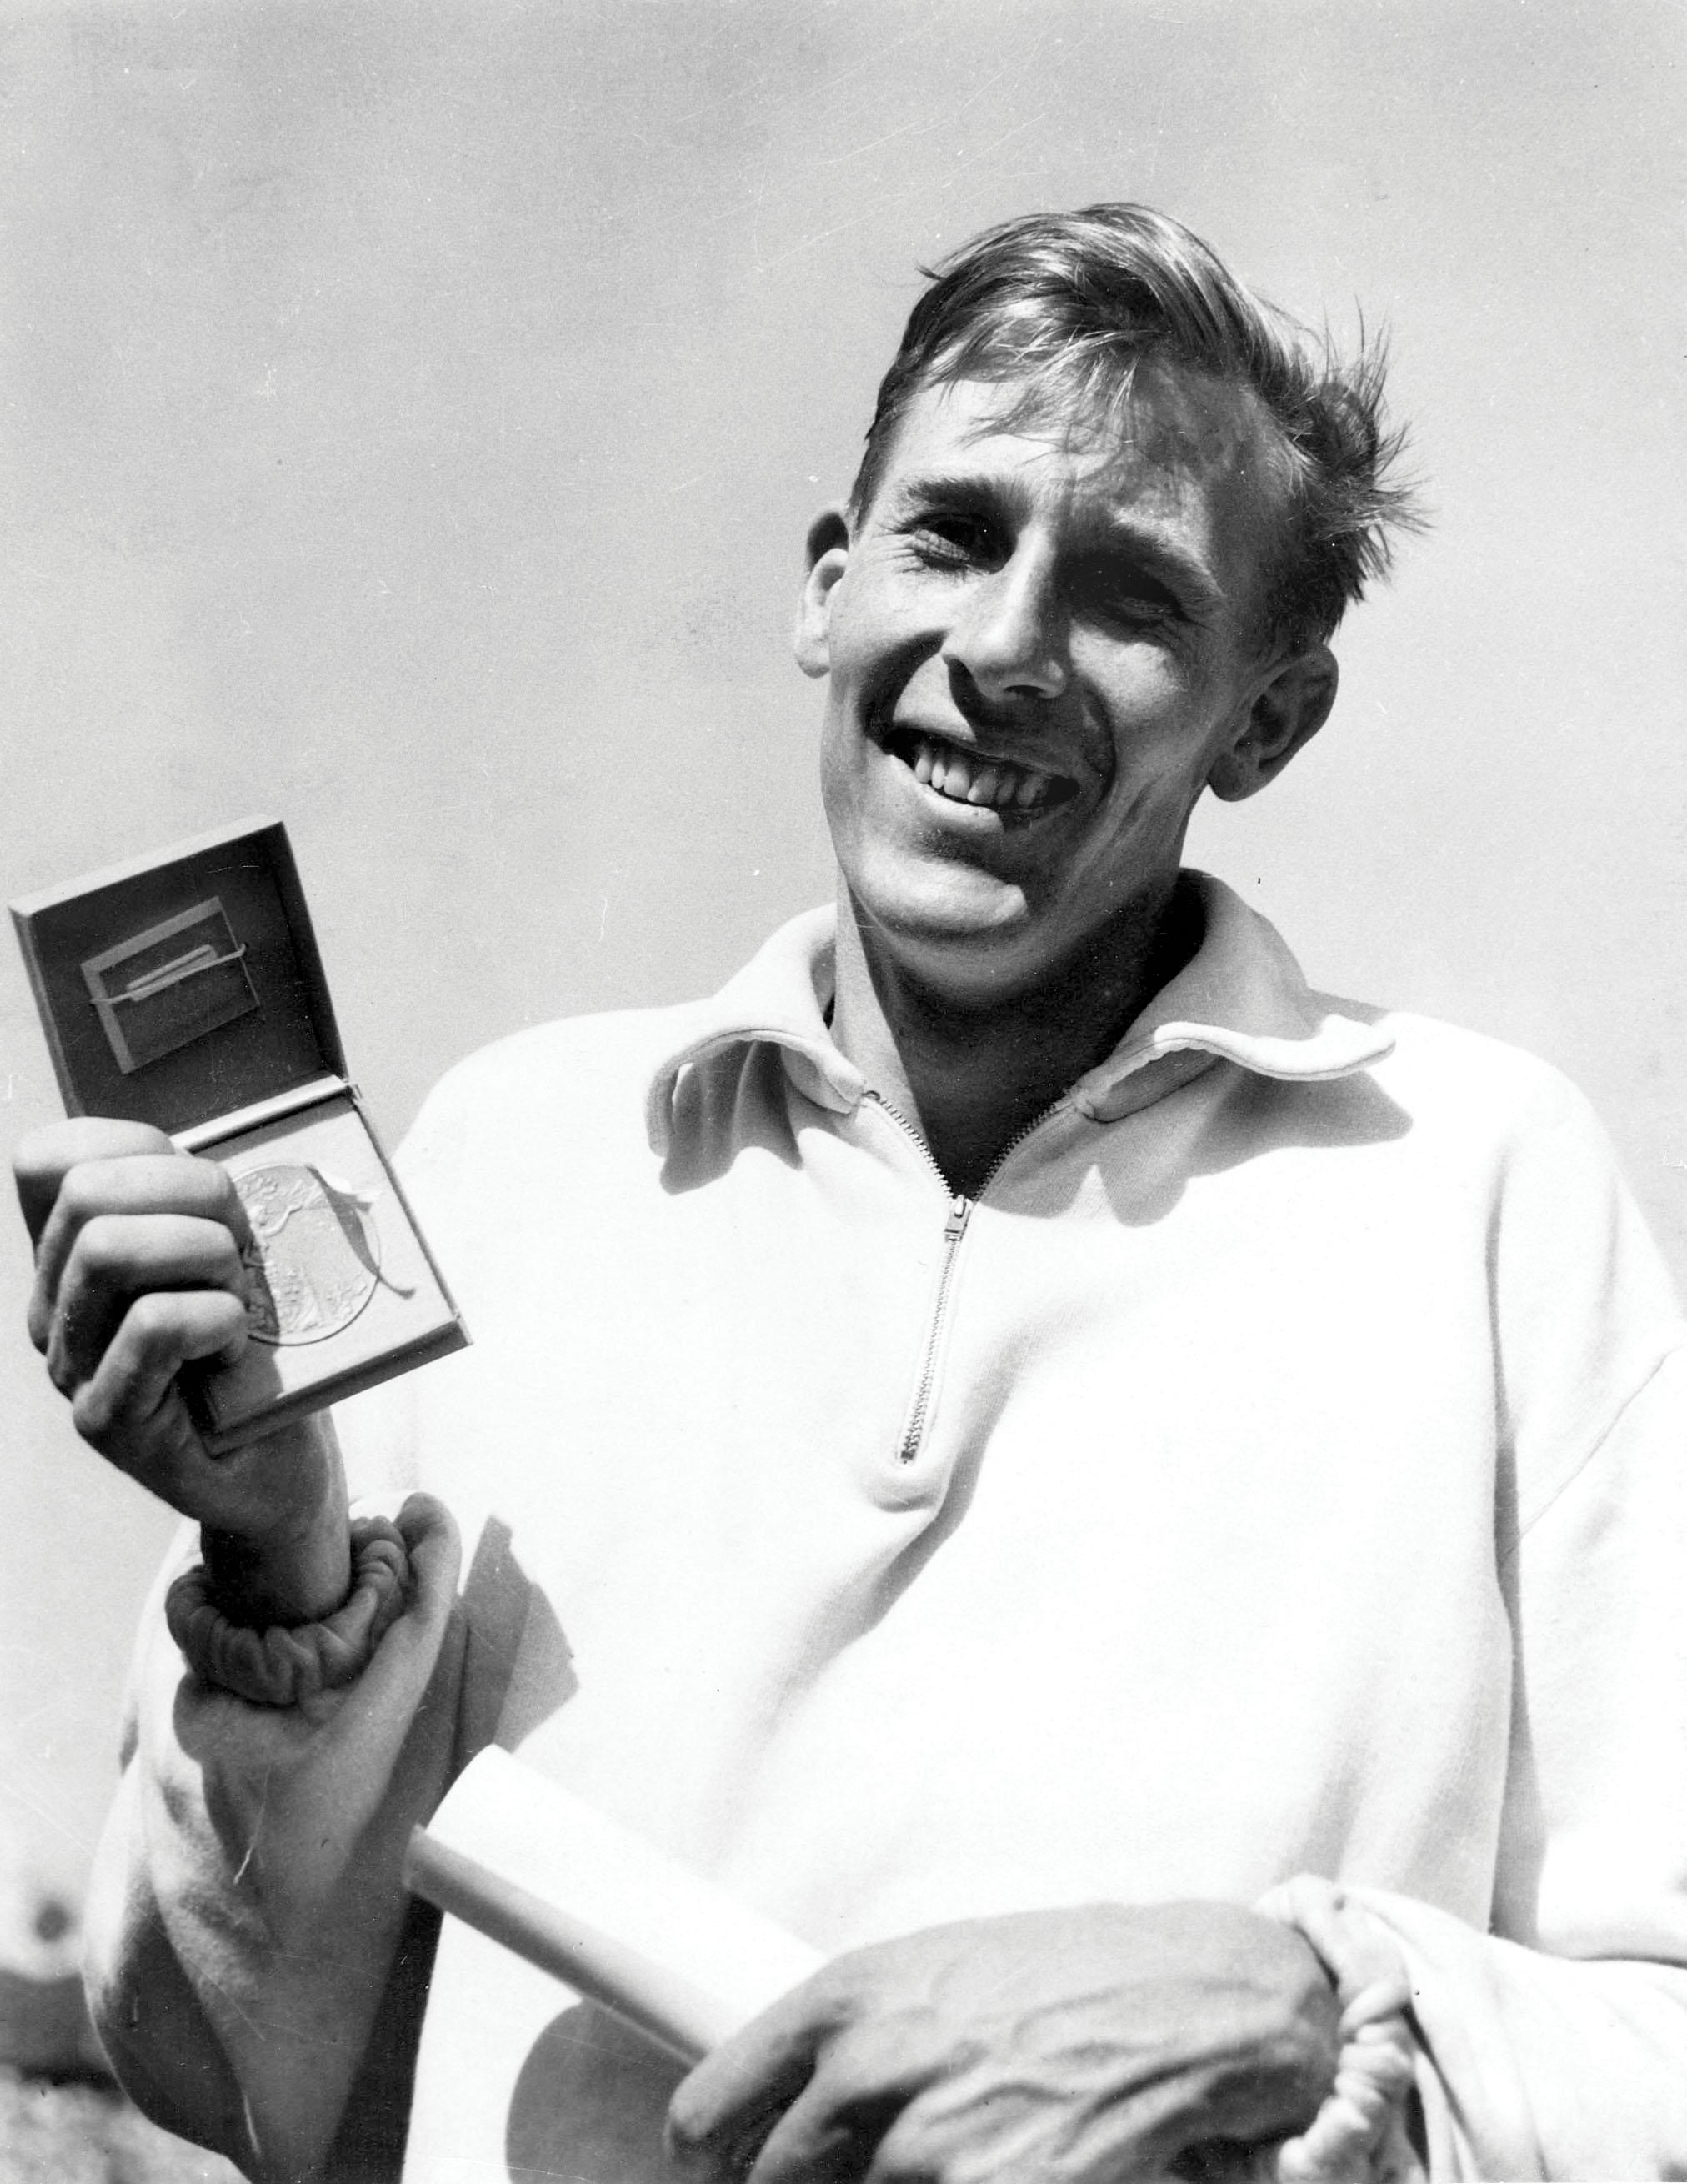 Bannister was the first athlete in the world to run a mile in under four minutes